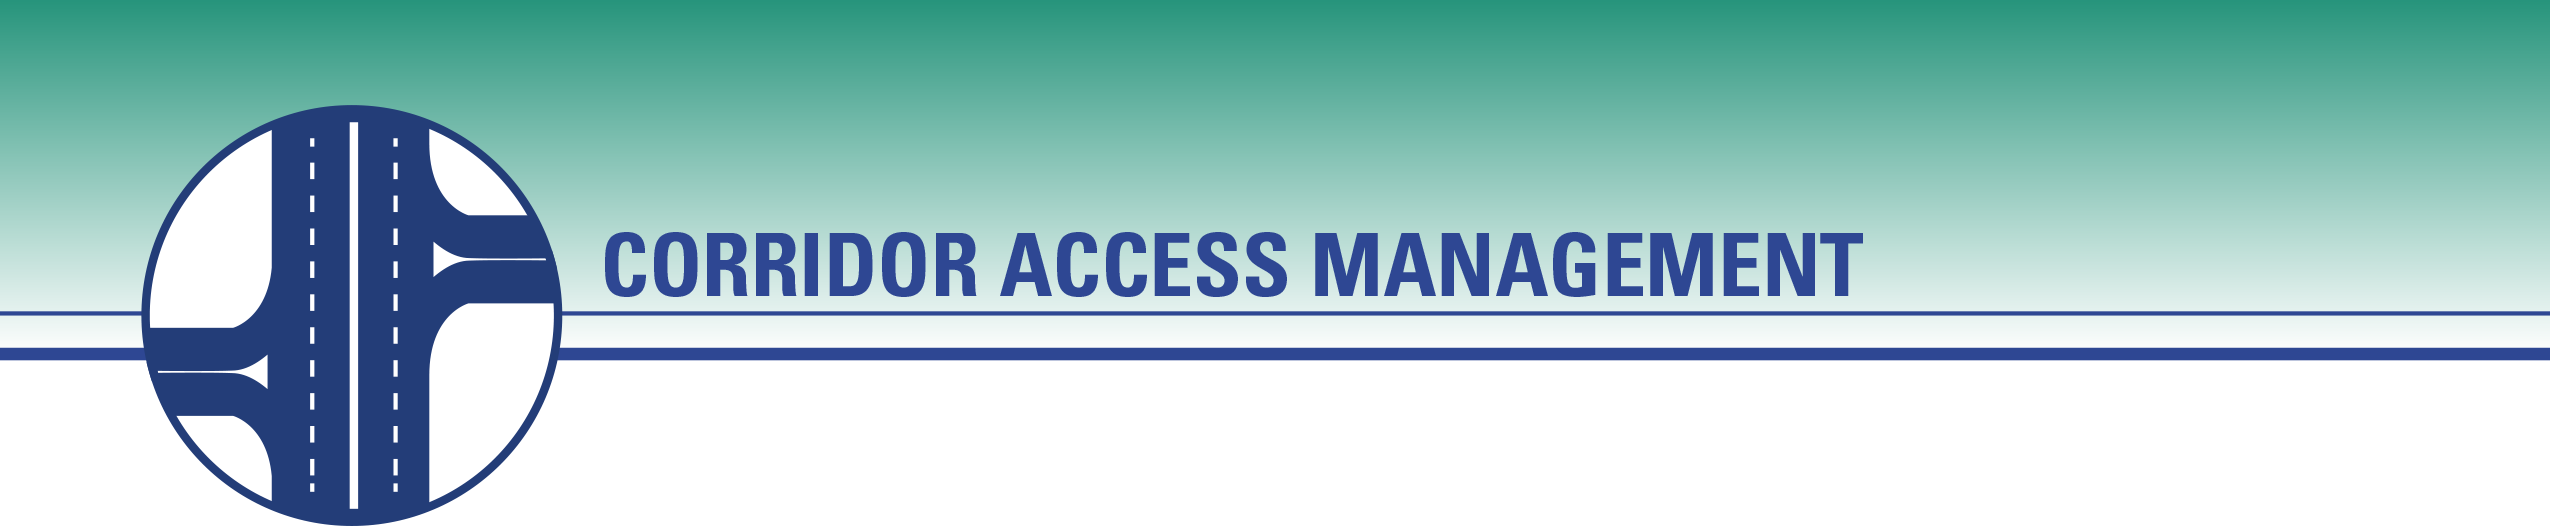 Corridor Access Management